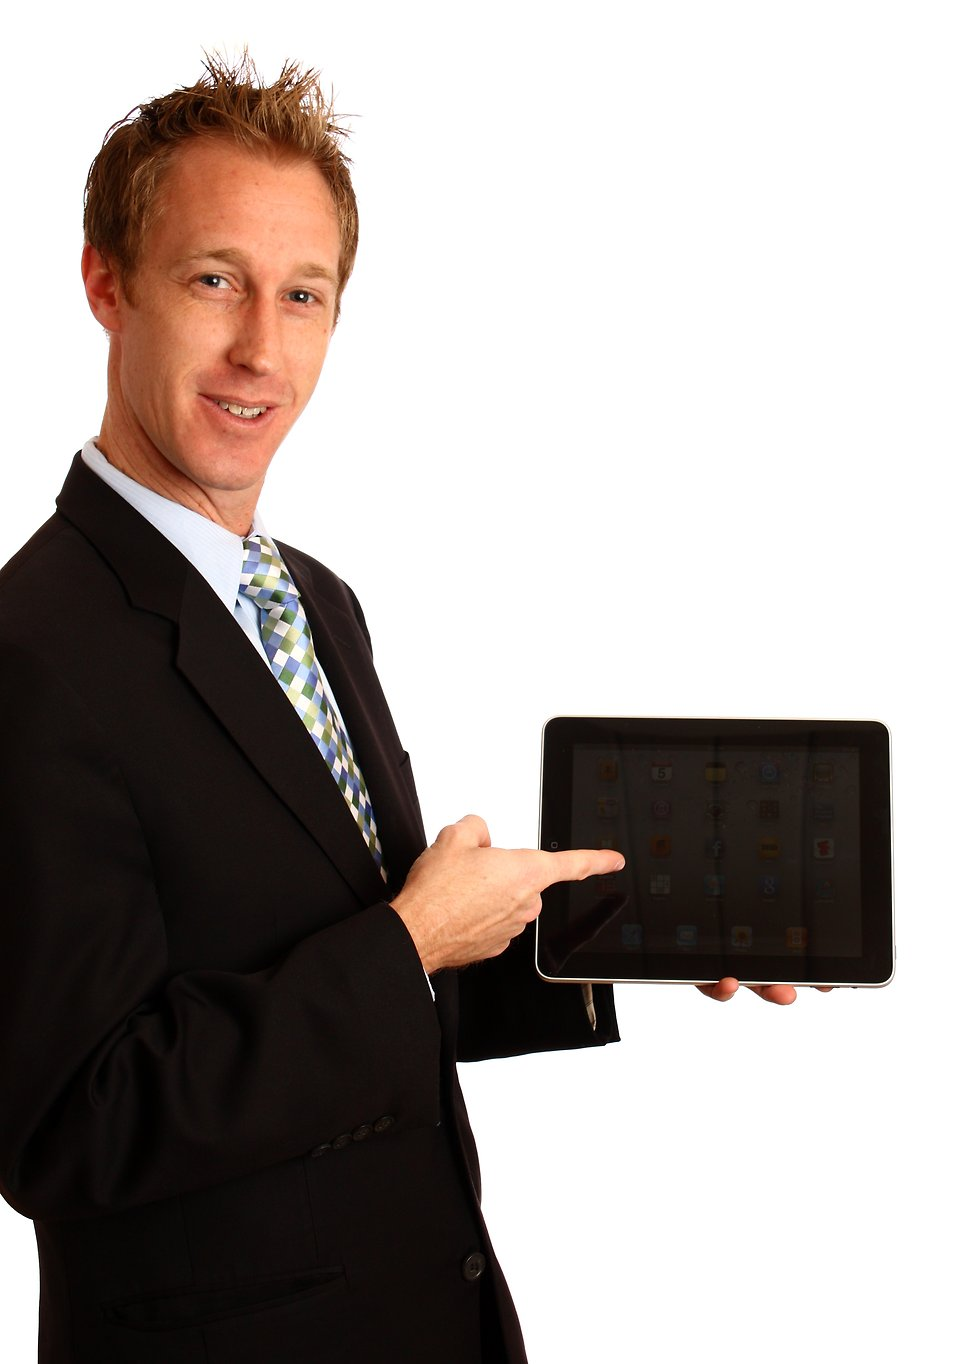 A young businessman holding a tablet computer.